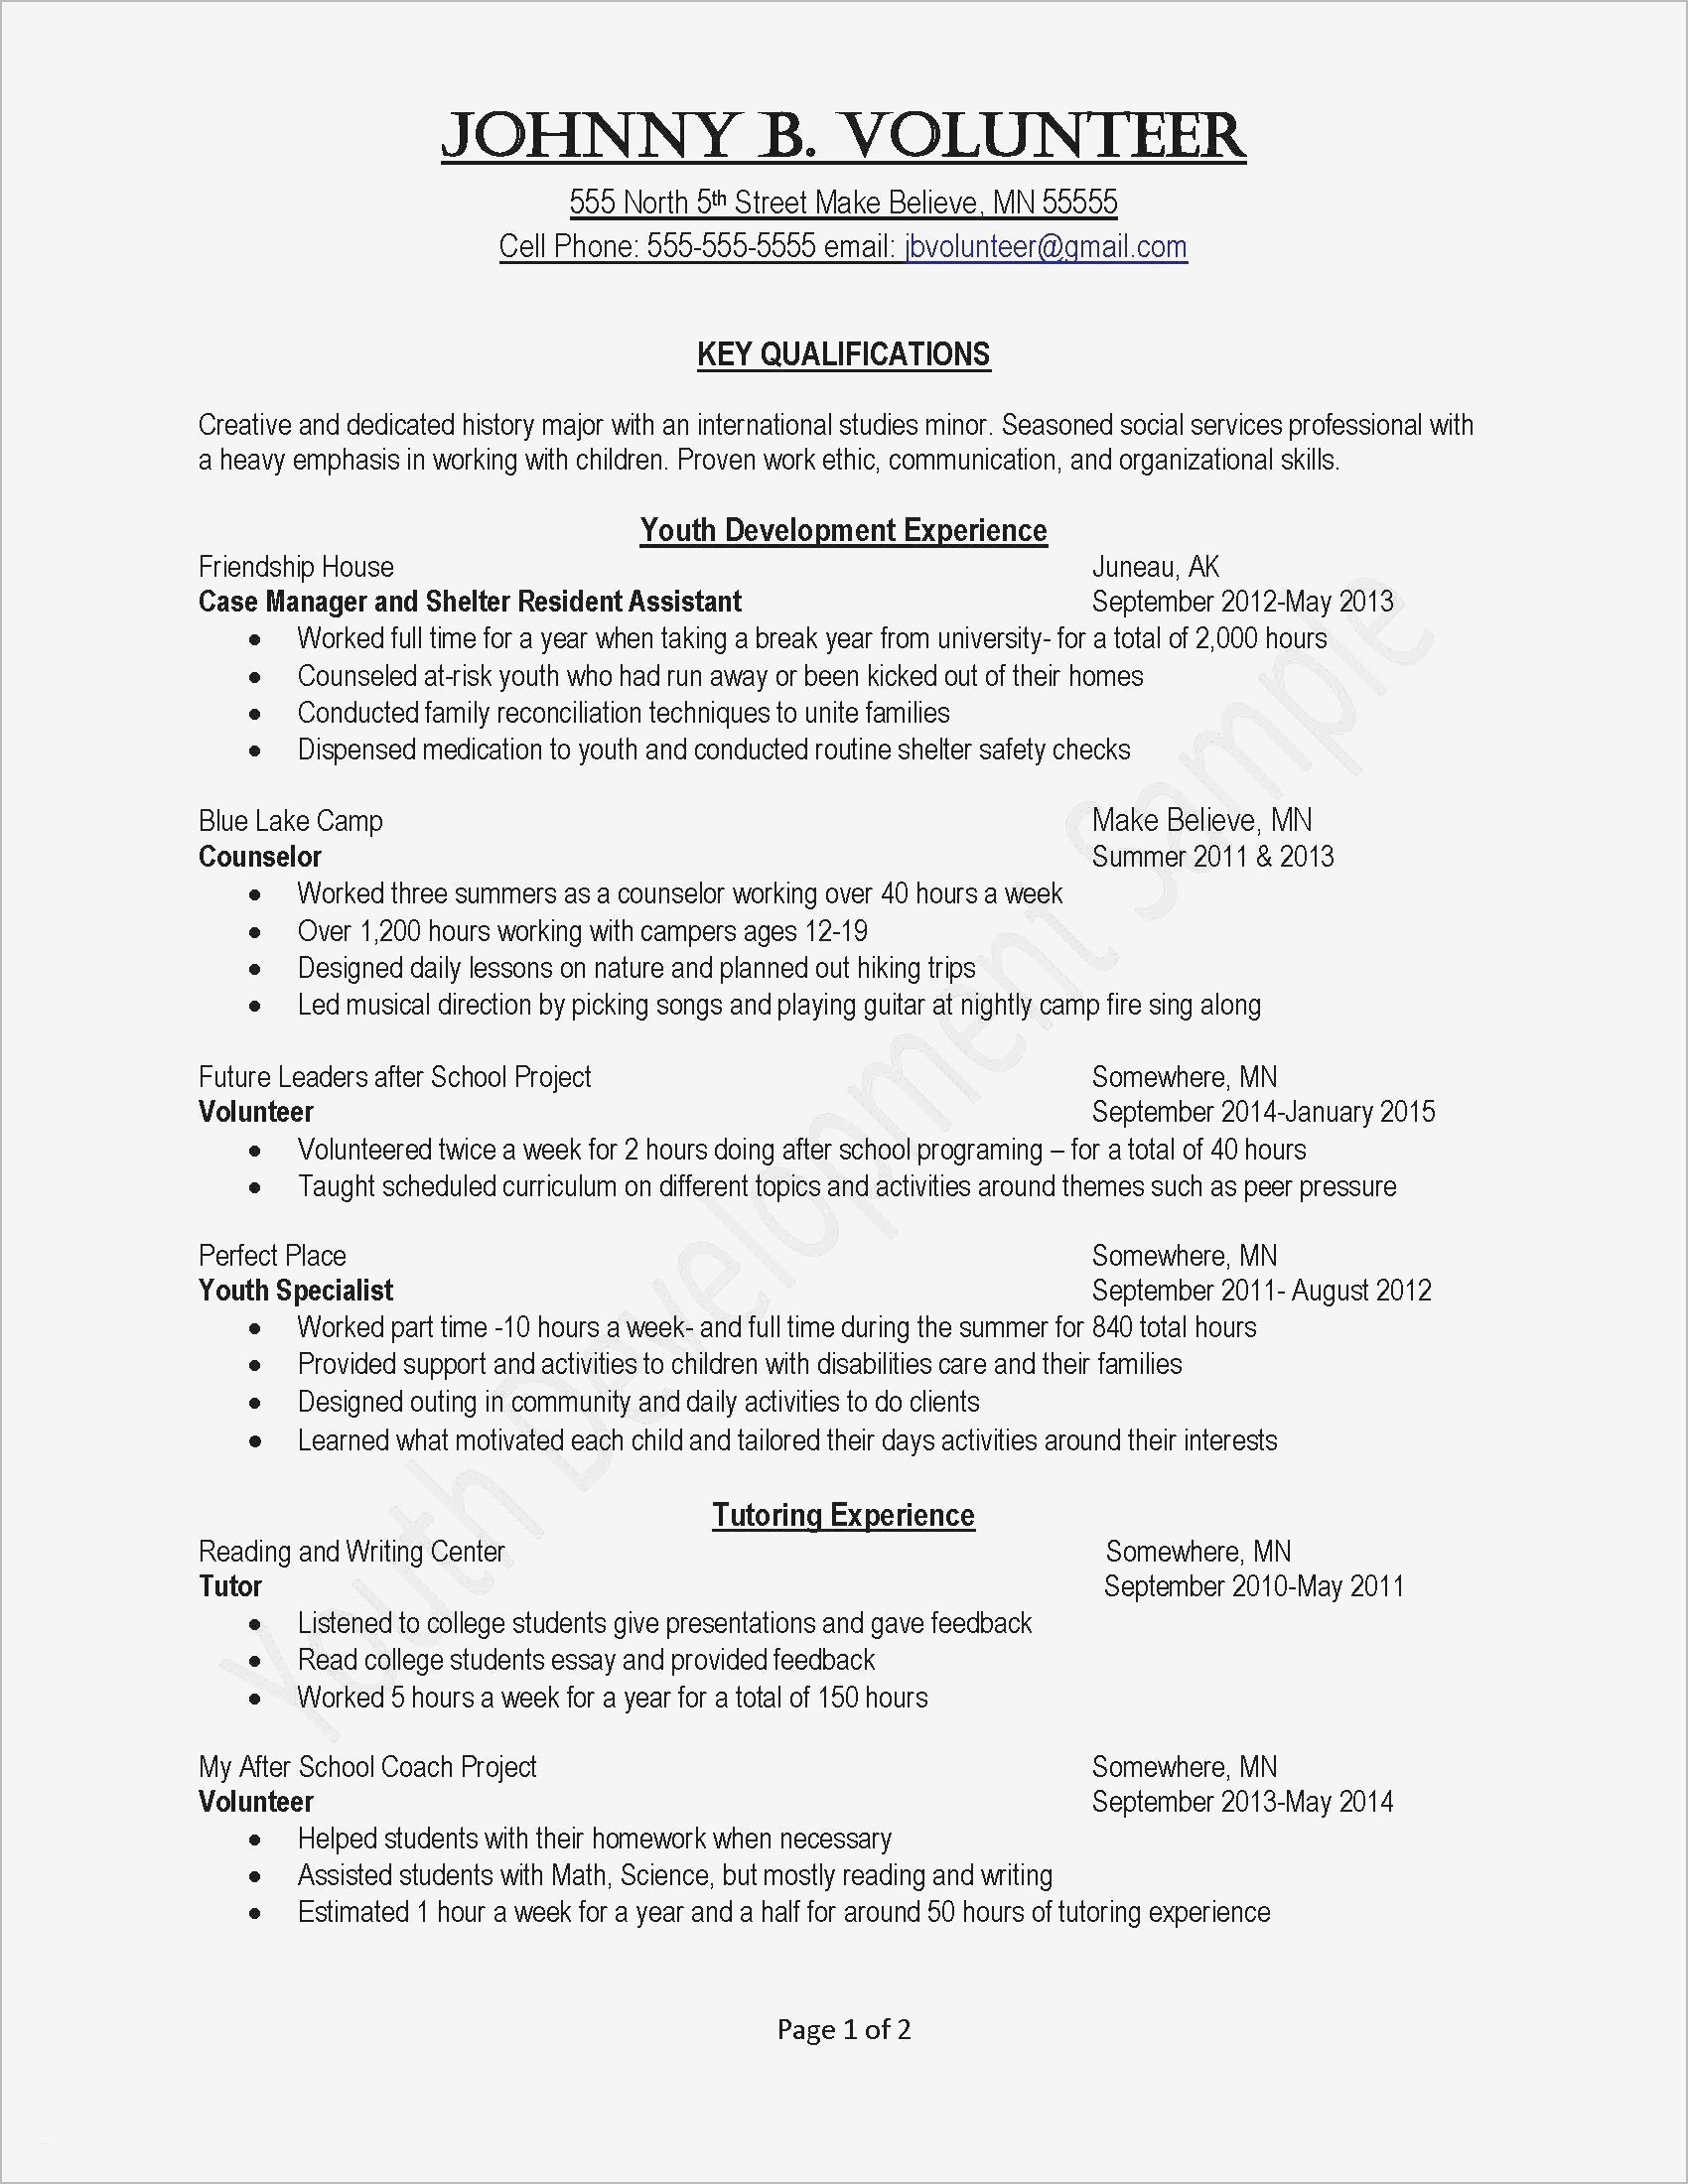 Professional Resume and Cover Letter Template - Unique Cover Letter for Resume Template Free